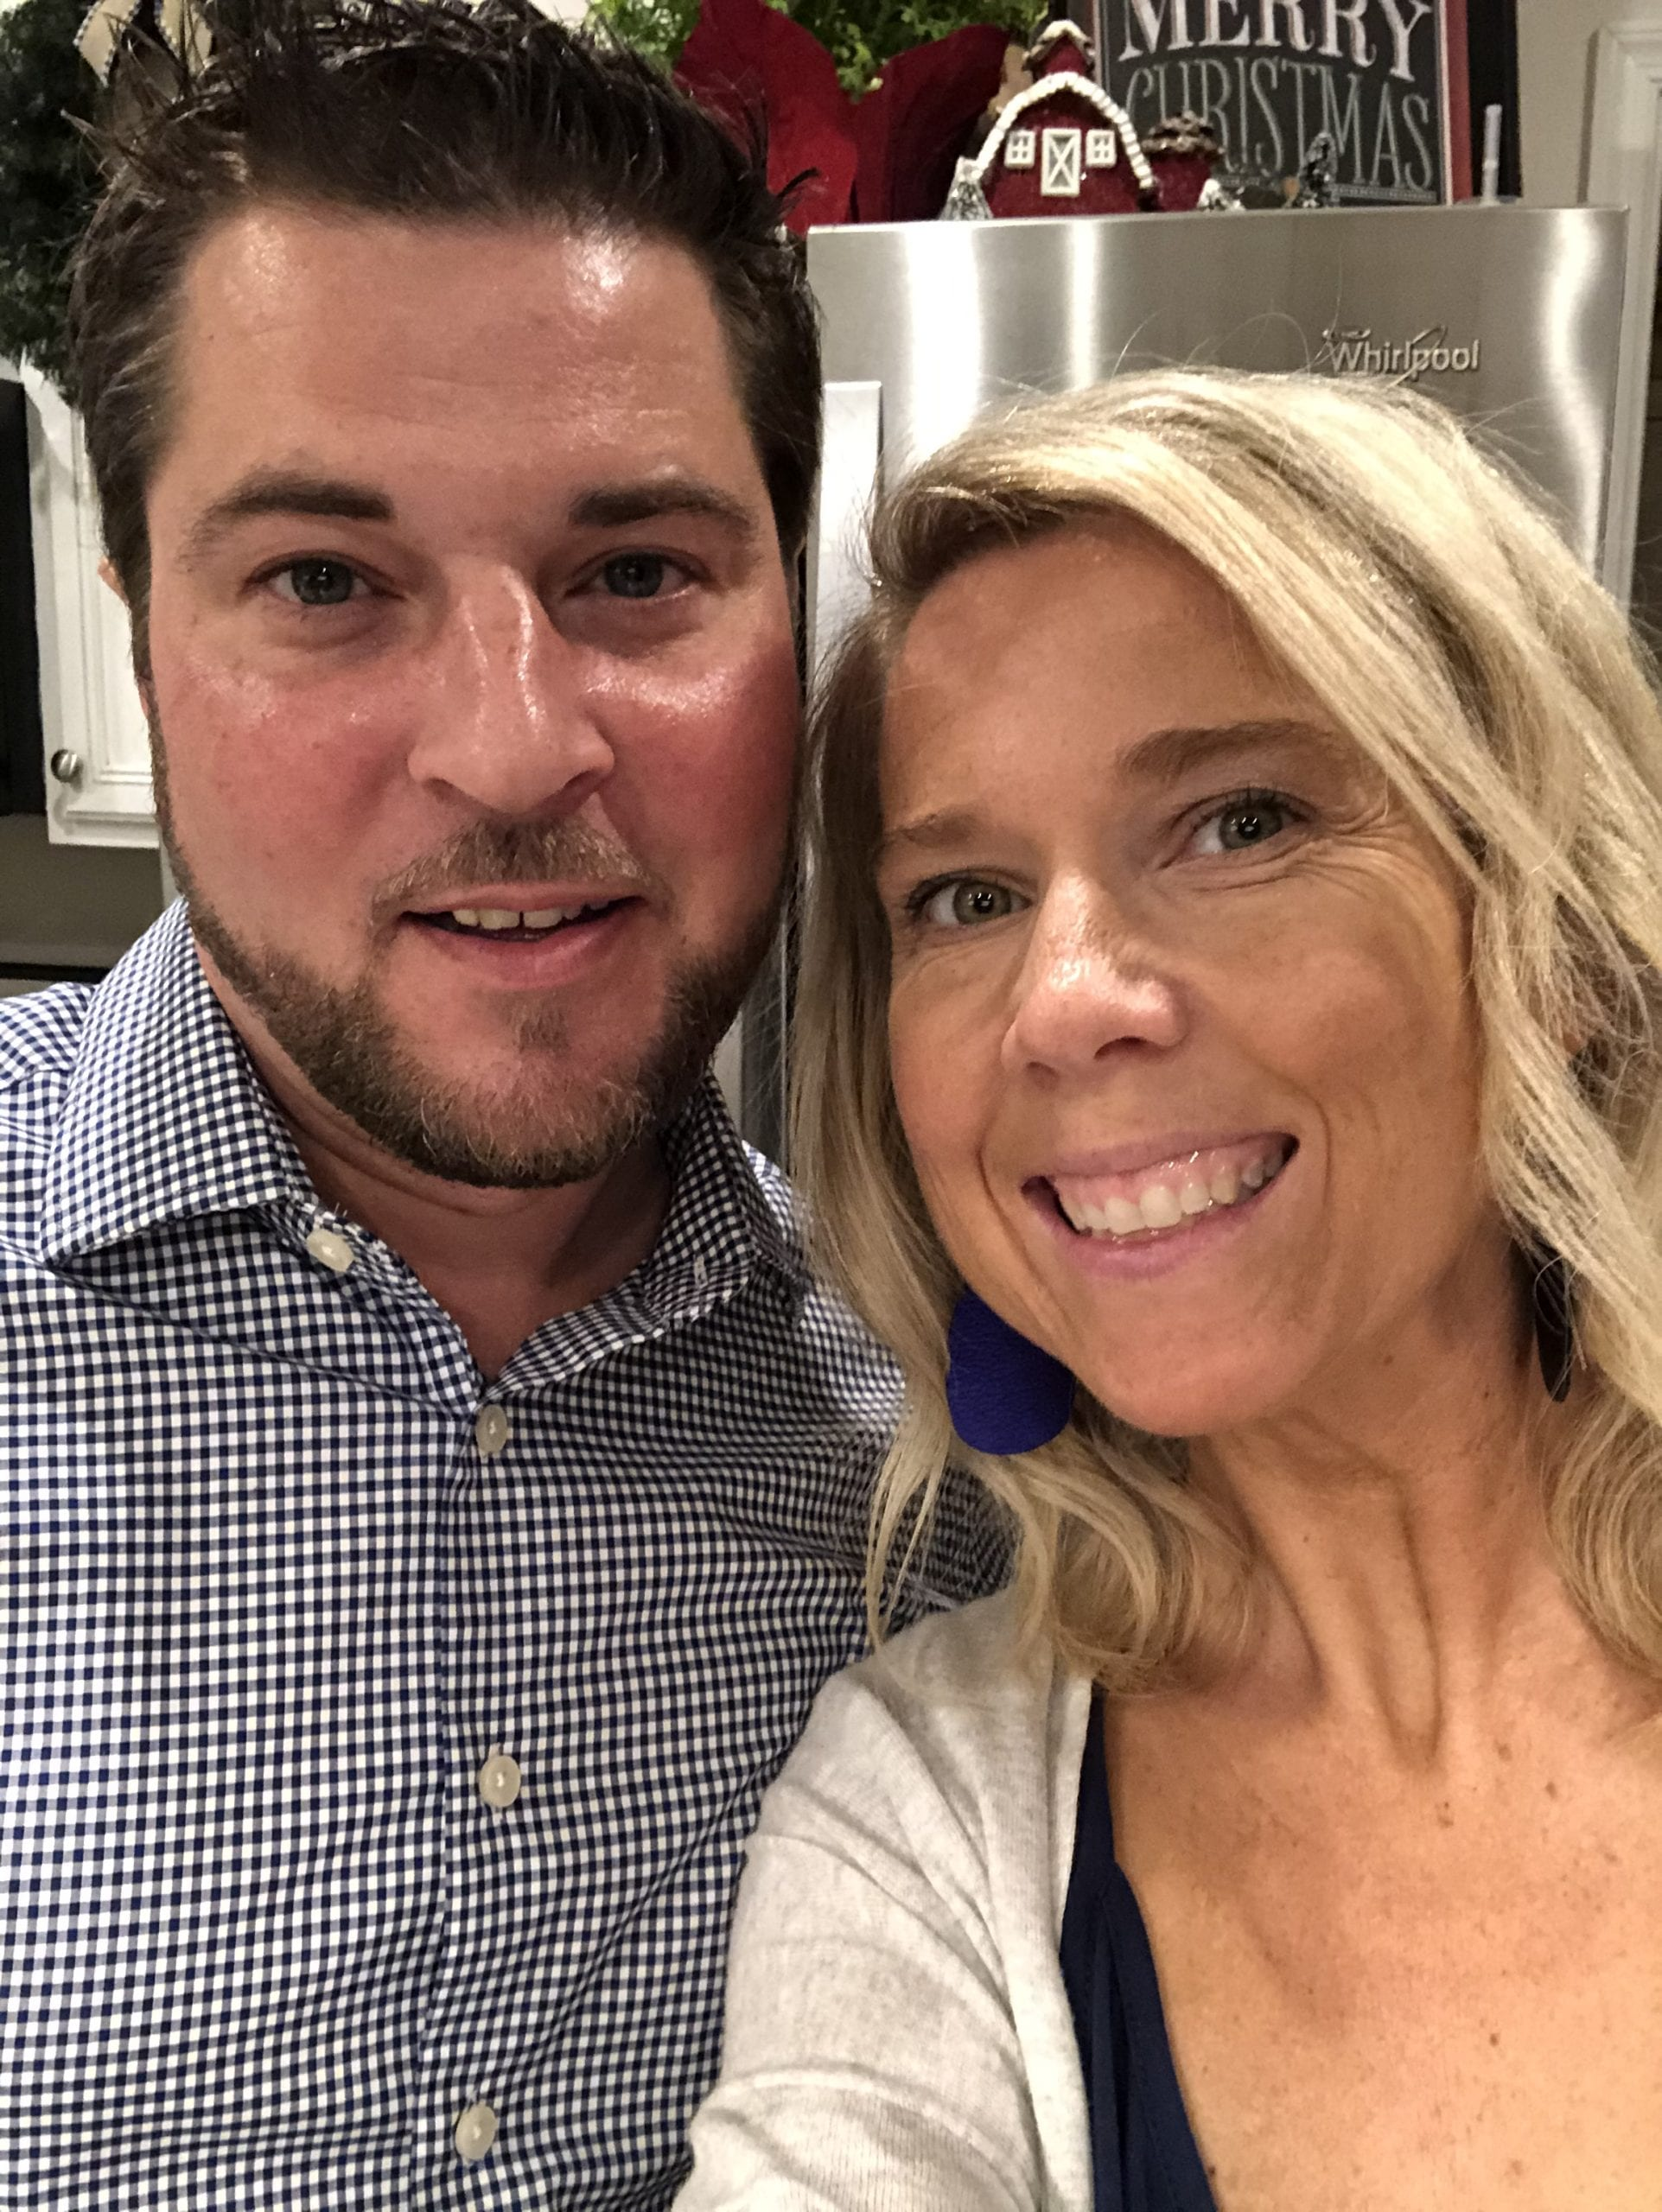 Eric & Courtney Weimer from Keystone Pavers, Bowie, MD